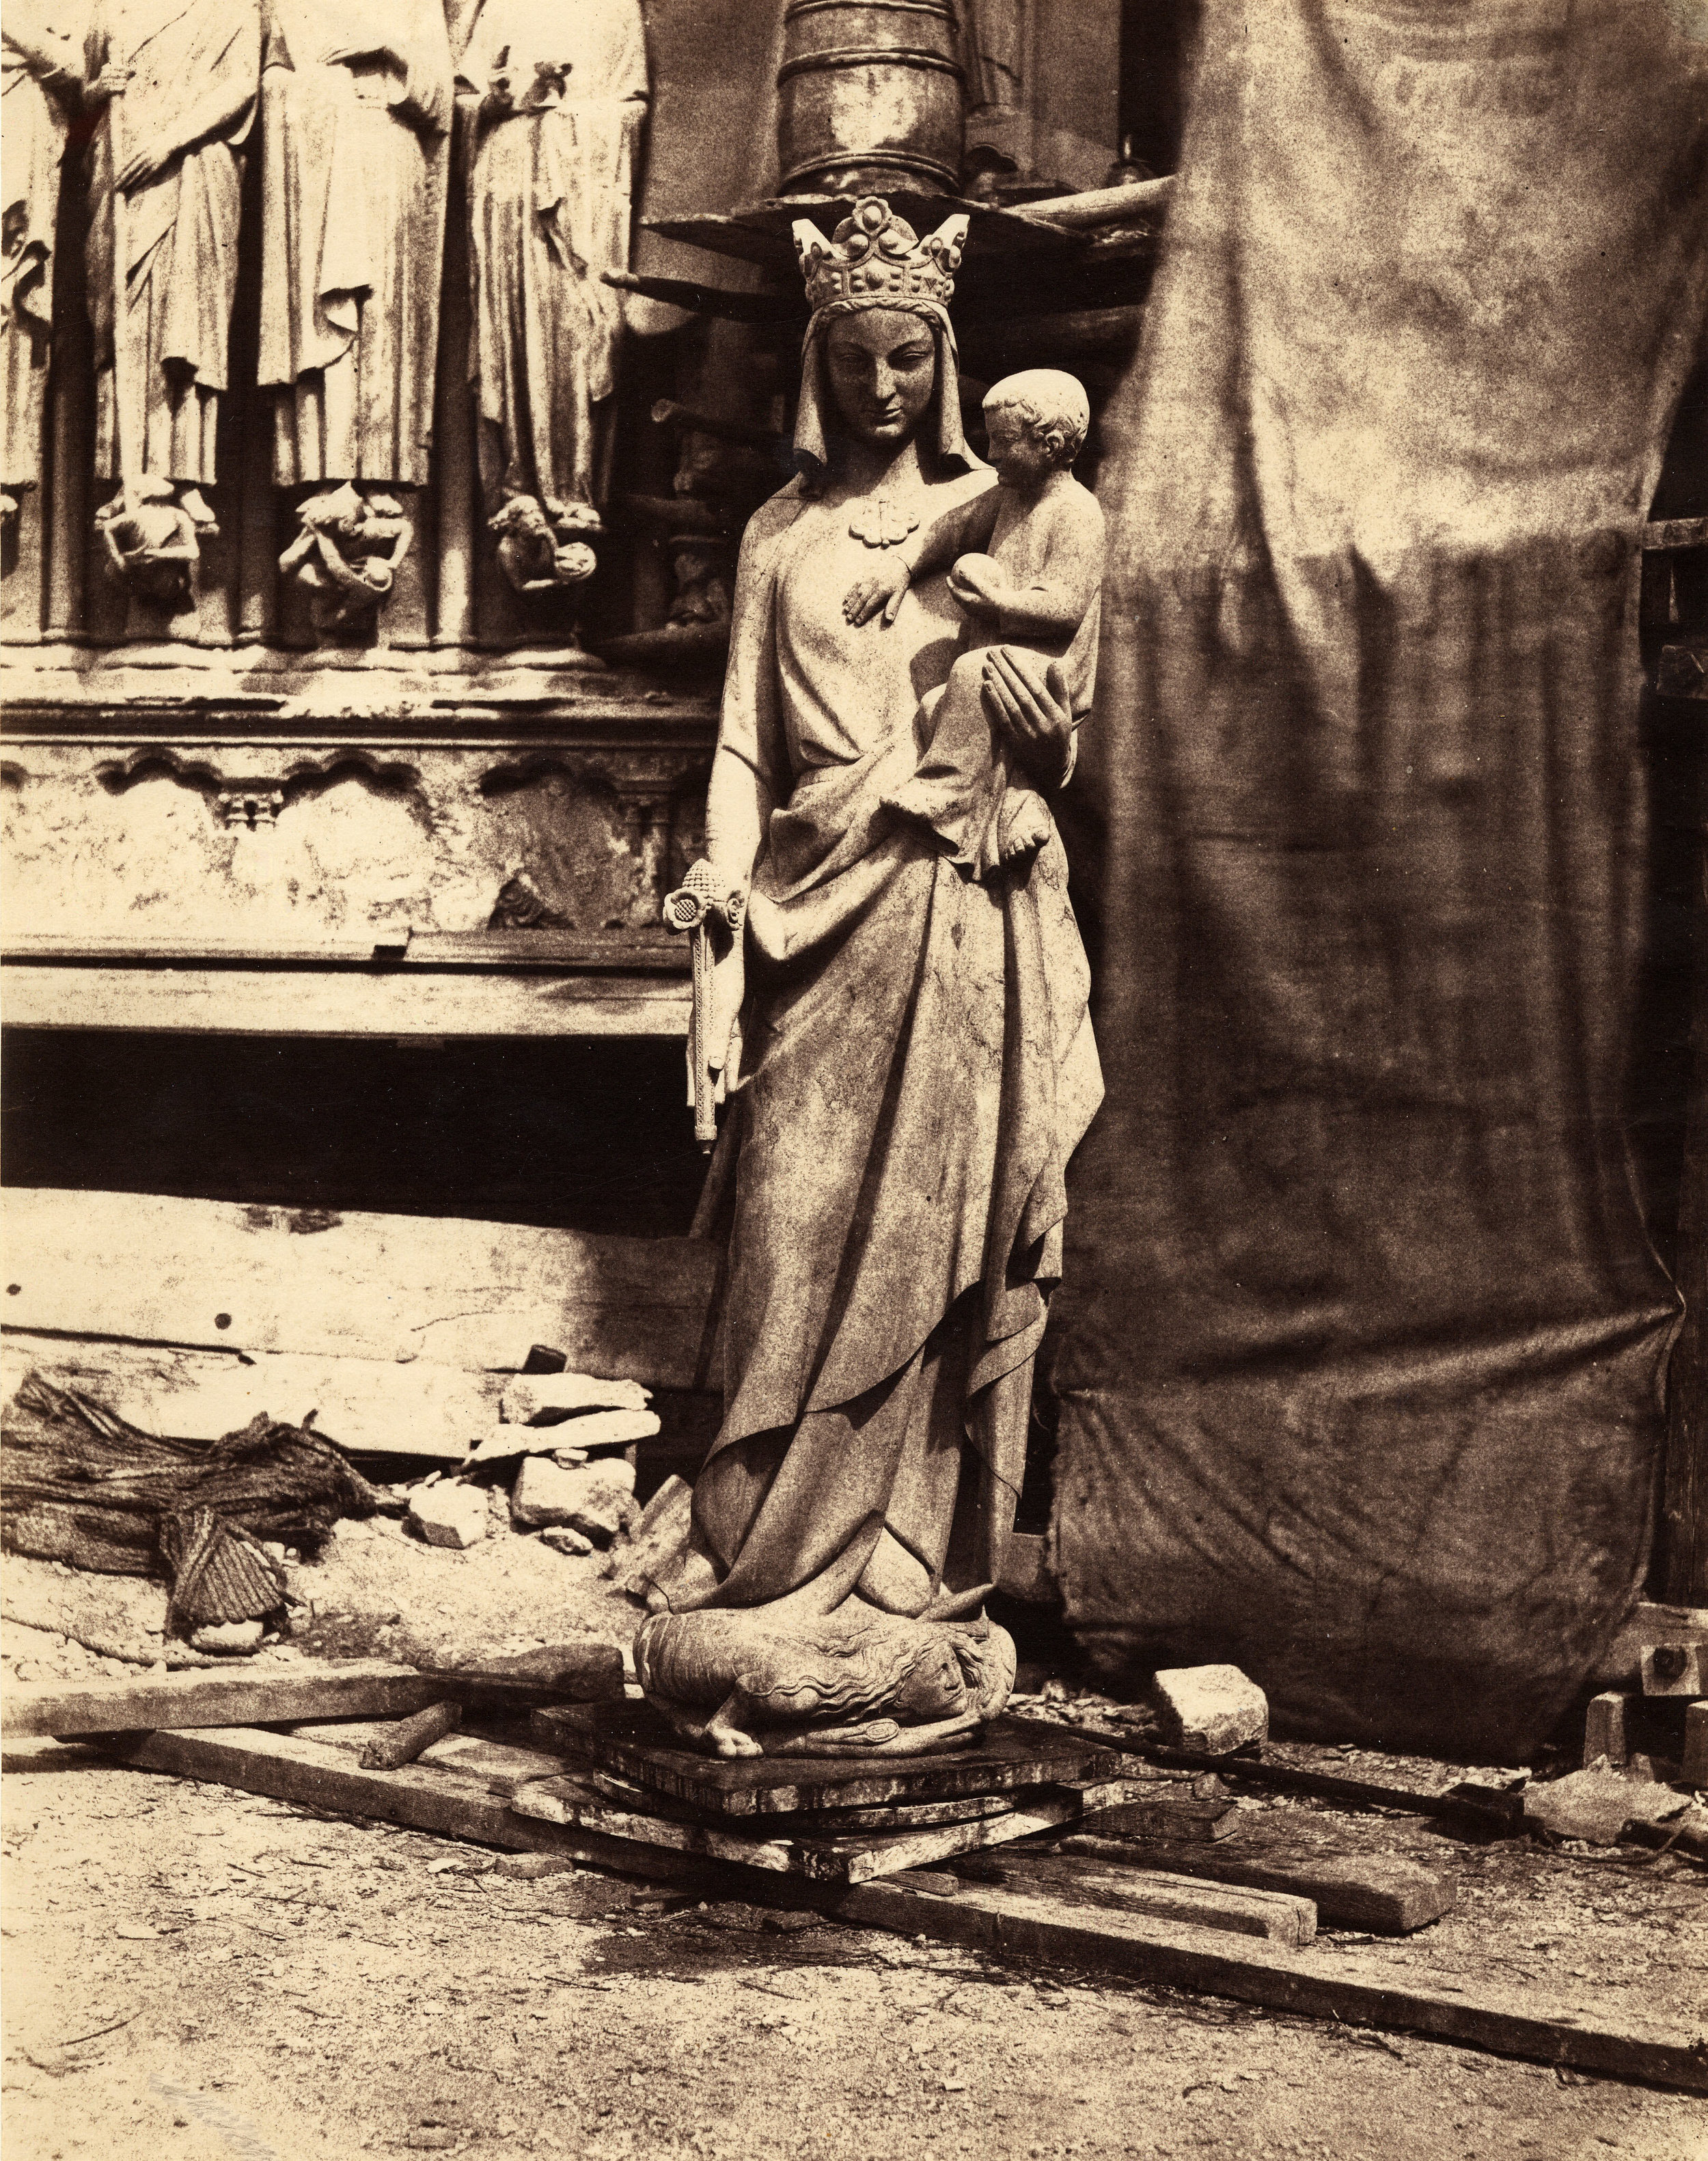 Auguste_Mestral,_Sculpture_of_Virgin_and_Child,_Notre_Dame,_Paris,_ca._1851.jpg